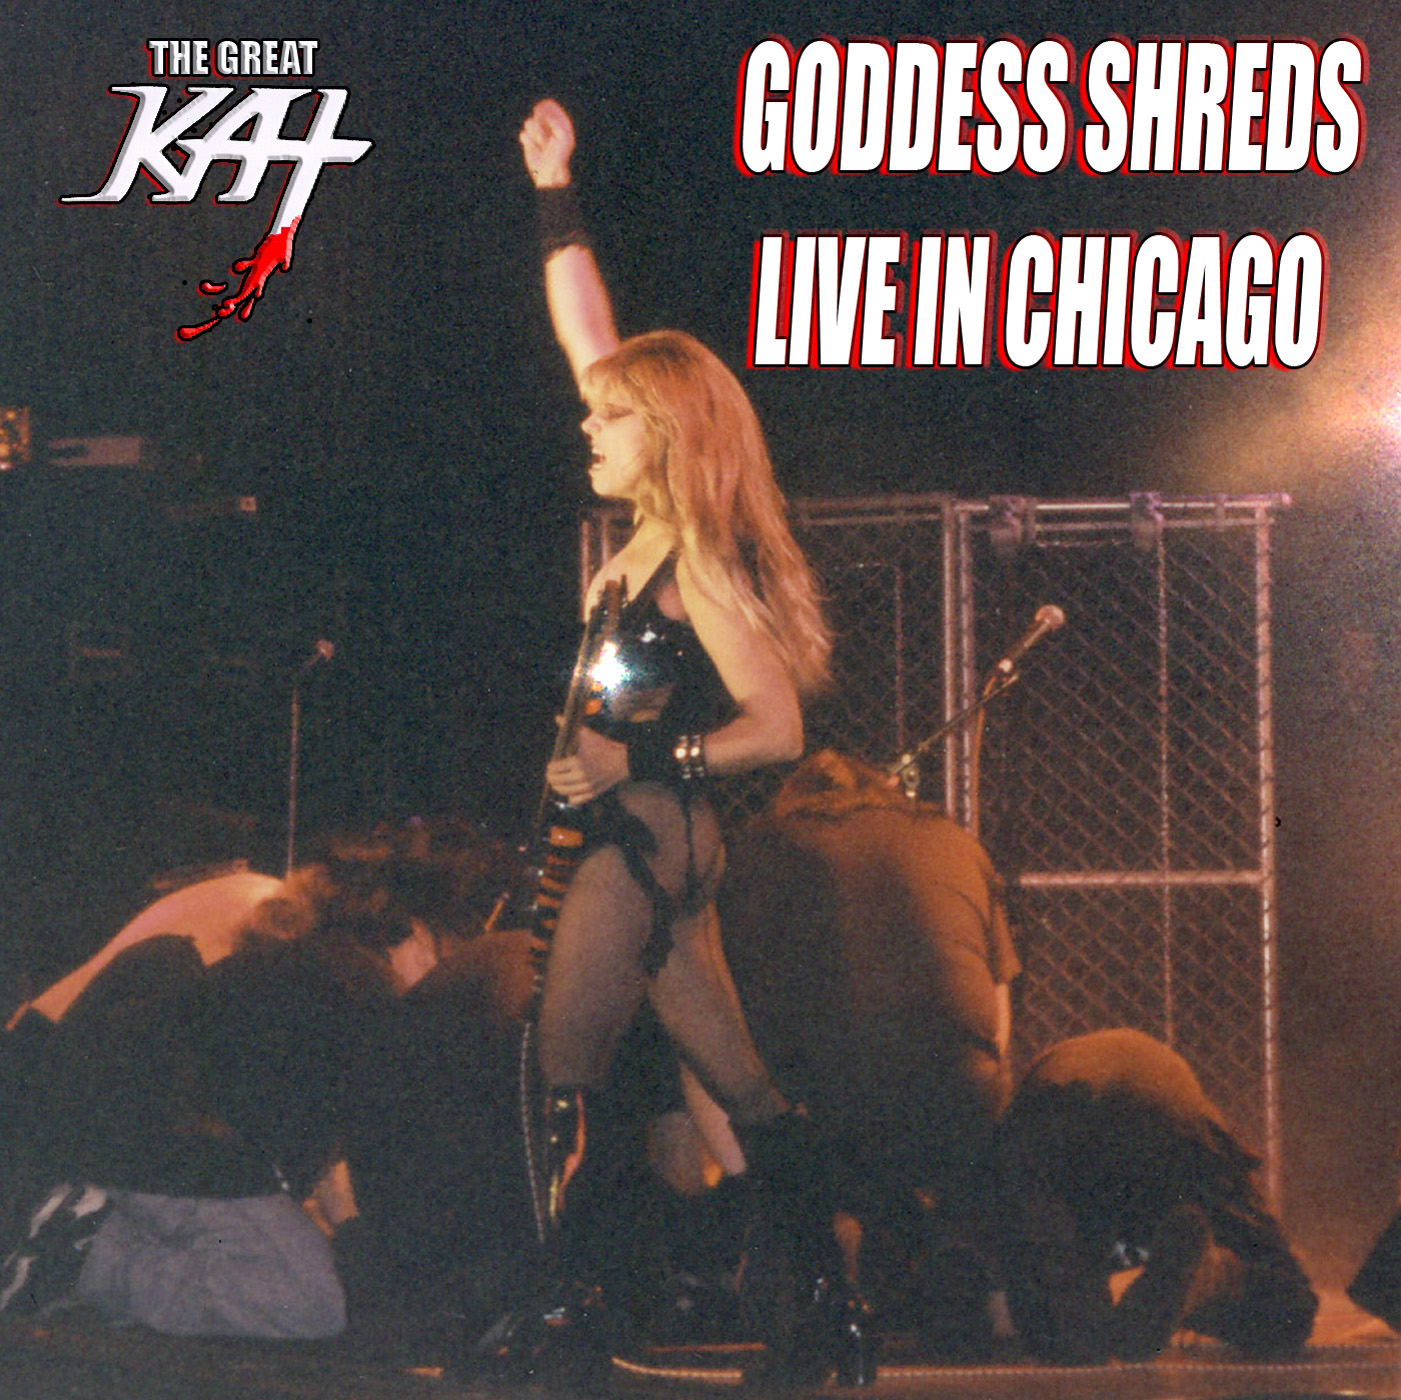 """THE GREAT KAT """"GODDESS SHREDS LIVE IN CHICAGO"""" SONG SINGLE PHOTO!"""